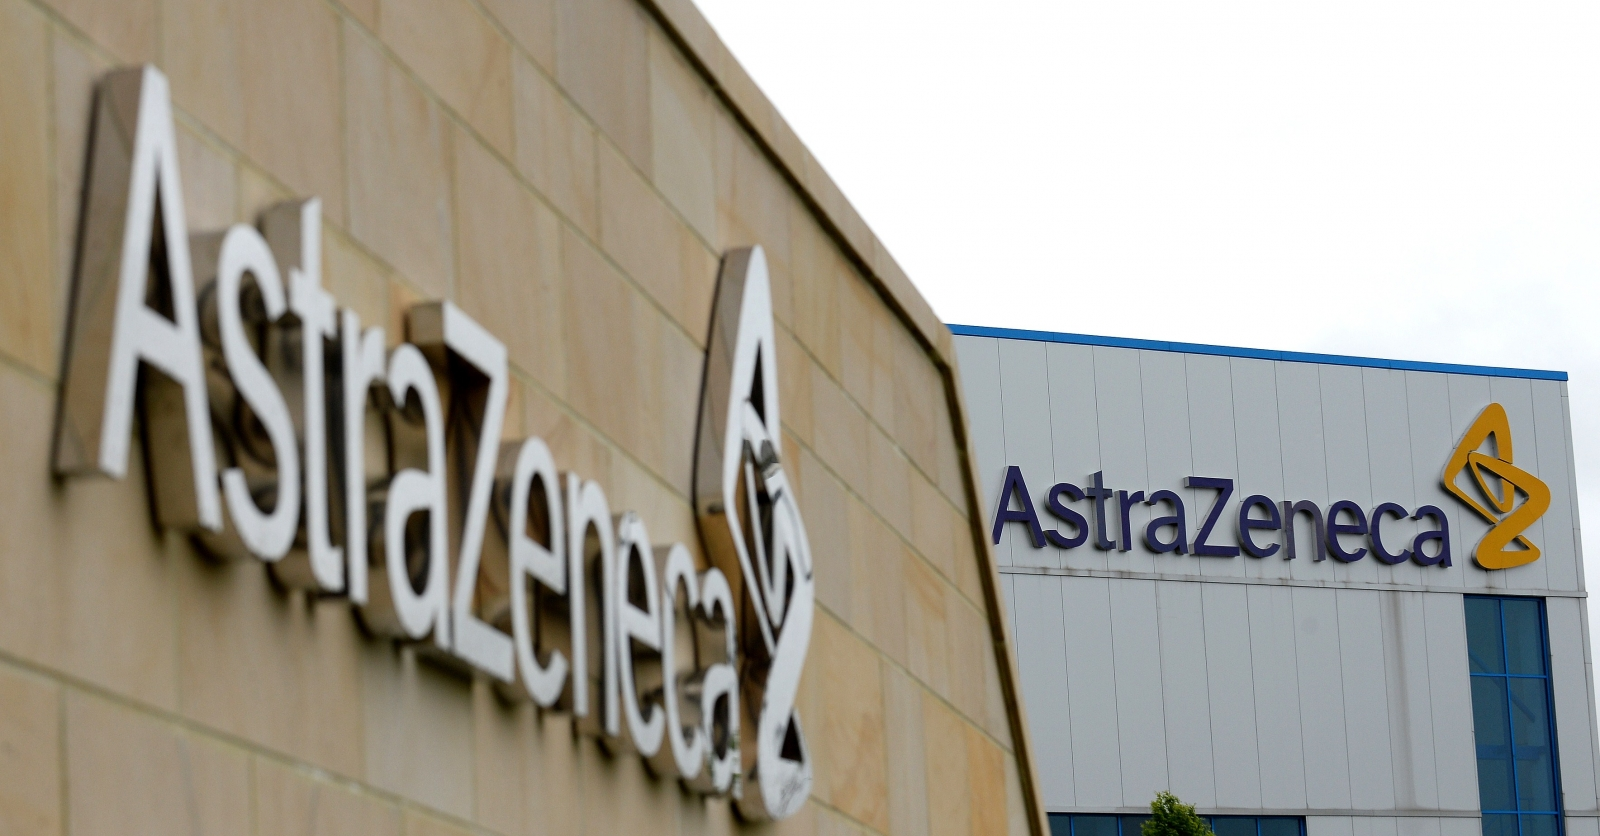 AstraZeneca and LEO Pharma enter into licensing agreements for a skin diseases drug